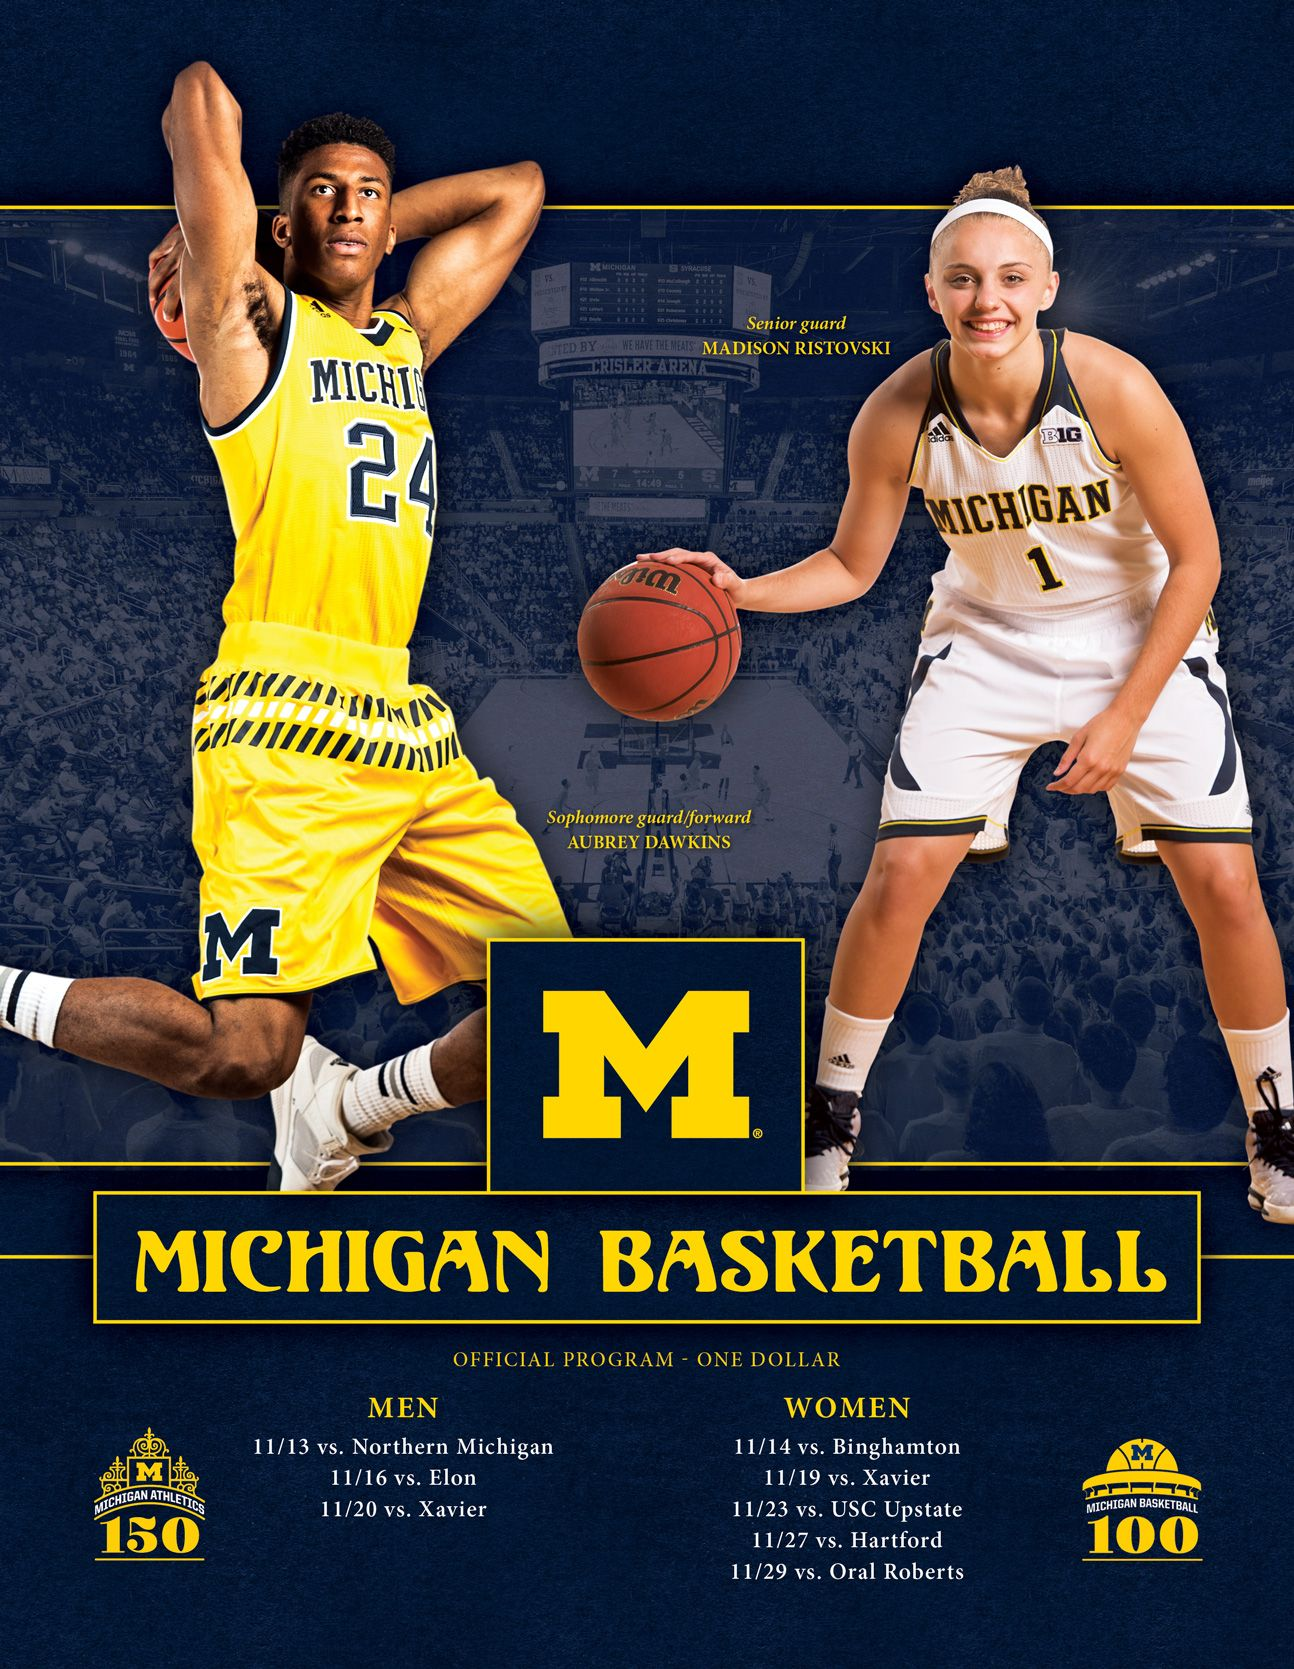 2015 16 Michigan Men S And Women S Basketball Official Program Vs November Opponents Including Michigan Usc Basketball Basketball Equipment Xavier Basketball